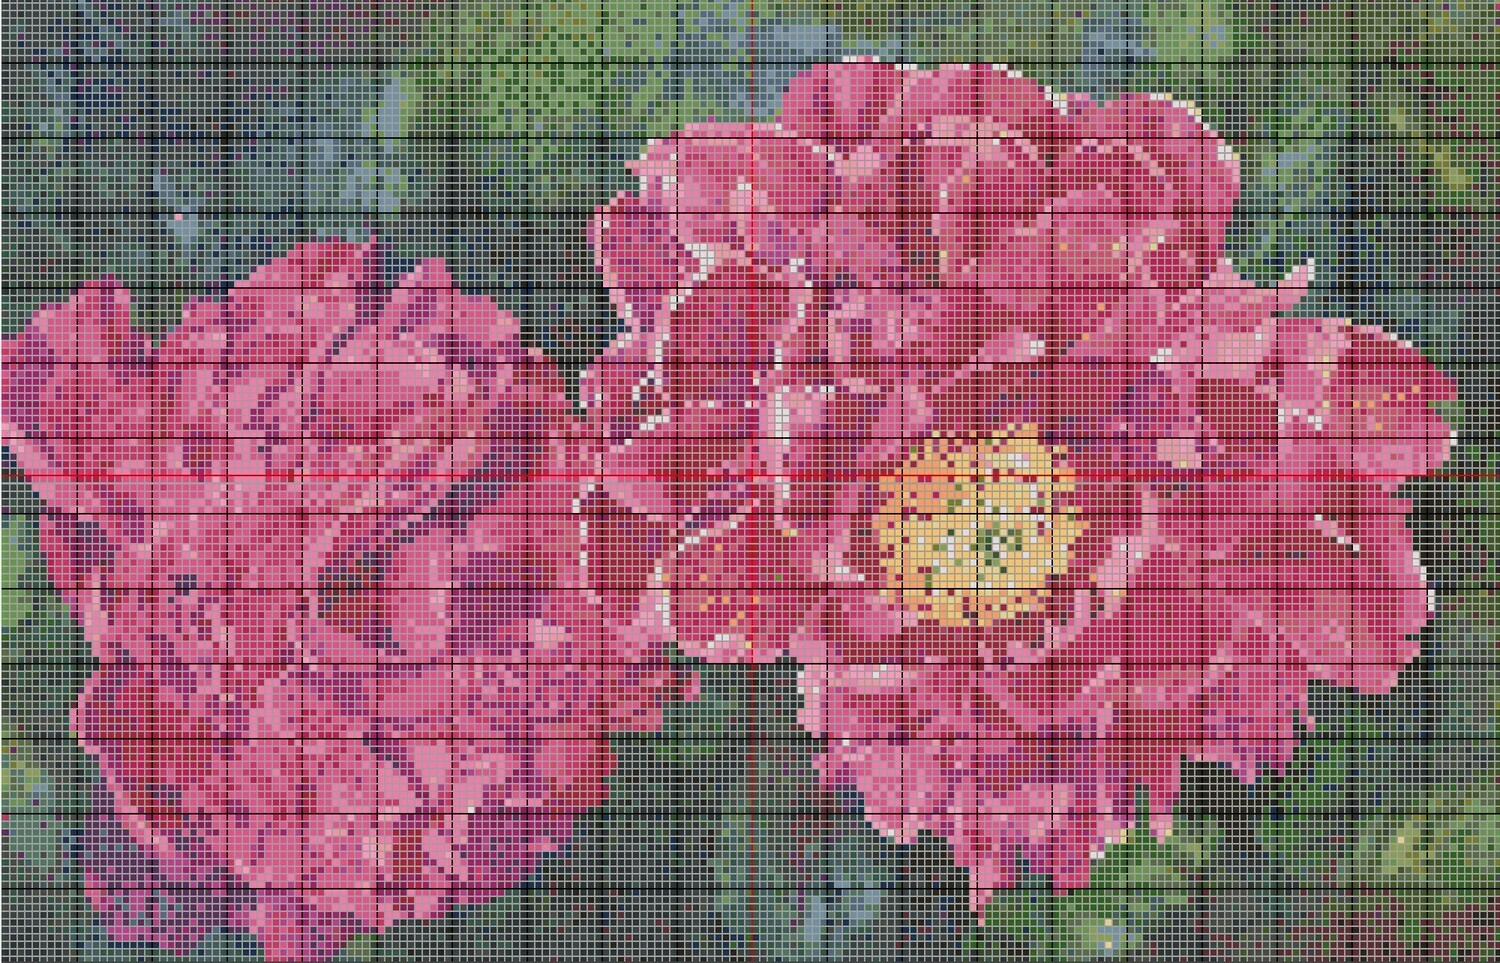 Beautiful Floral Cross Stitch - Pink Peonies - Pattern Only - Instant Digital Download